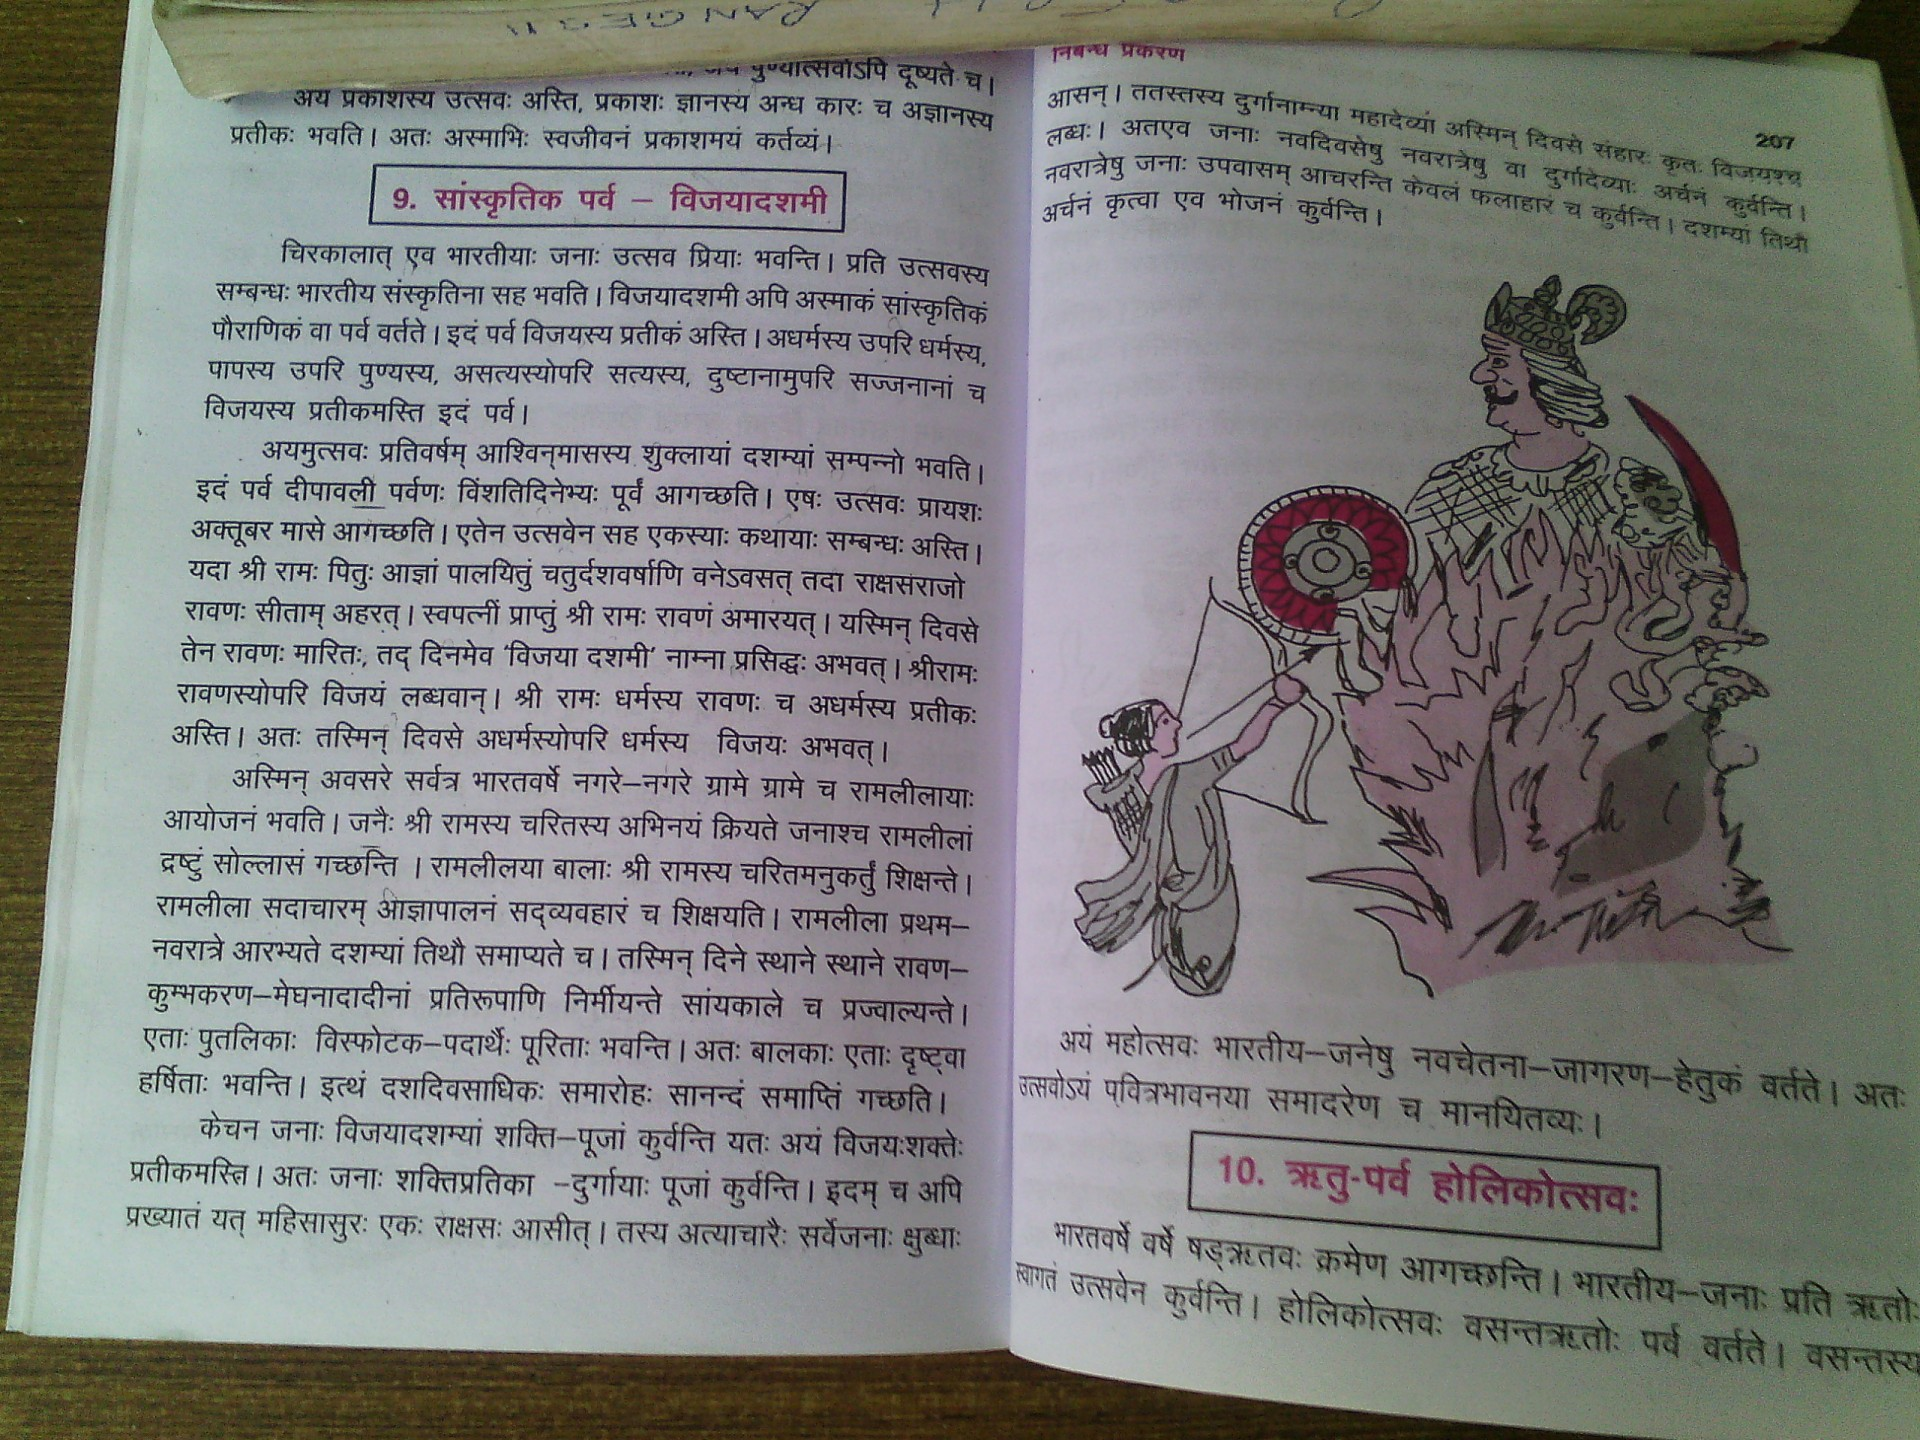 015 Essay On Dussehra Festival In English Surprising 1920